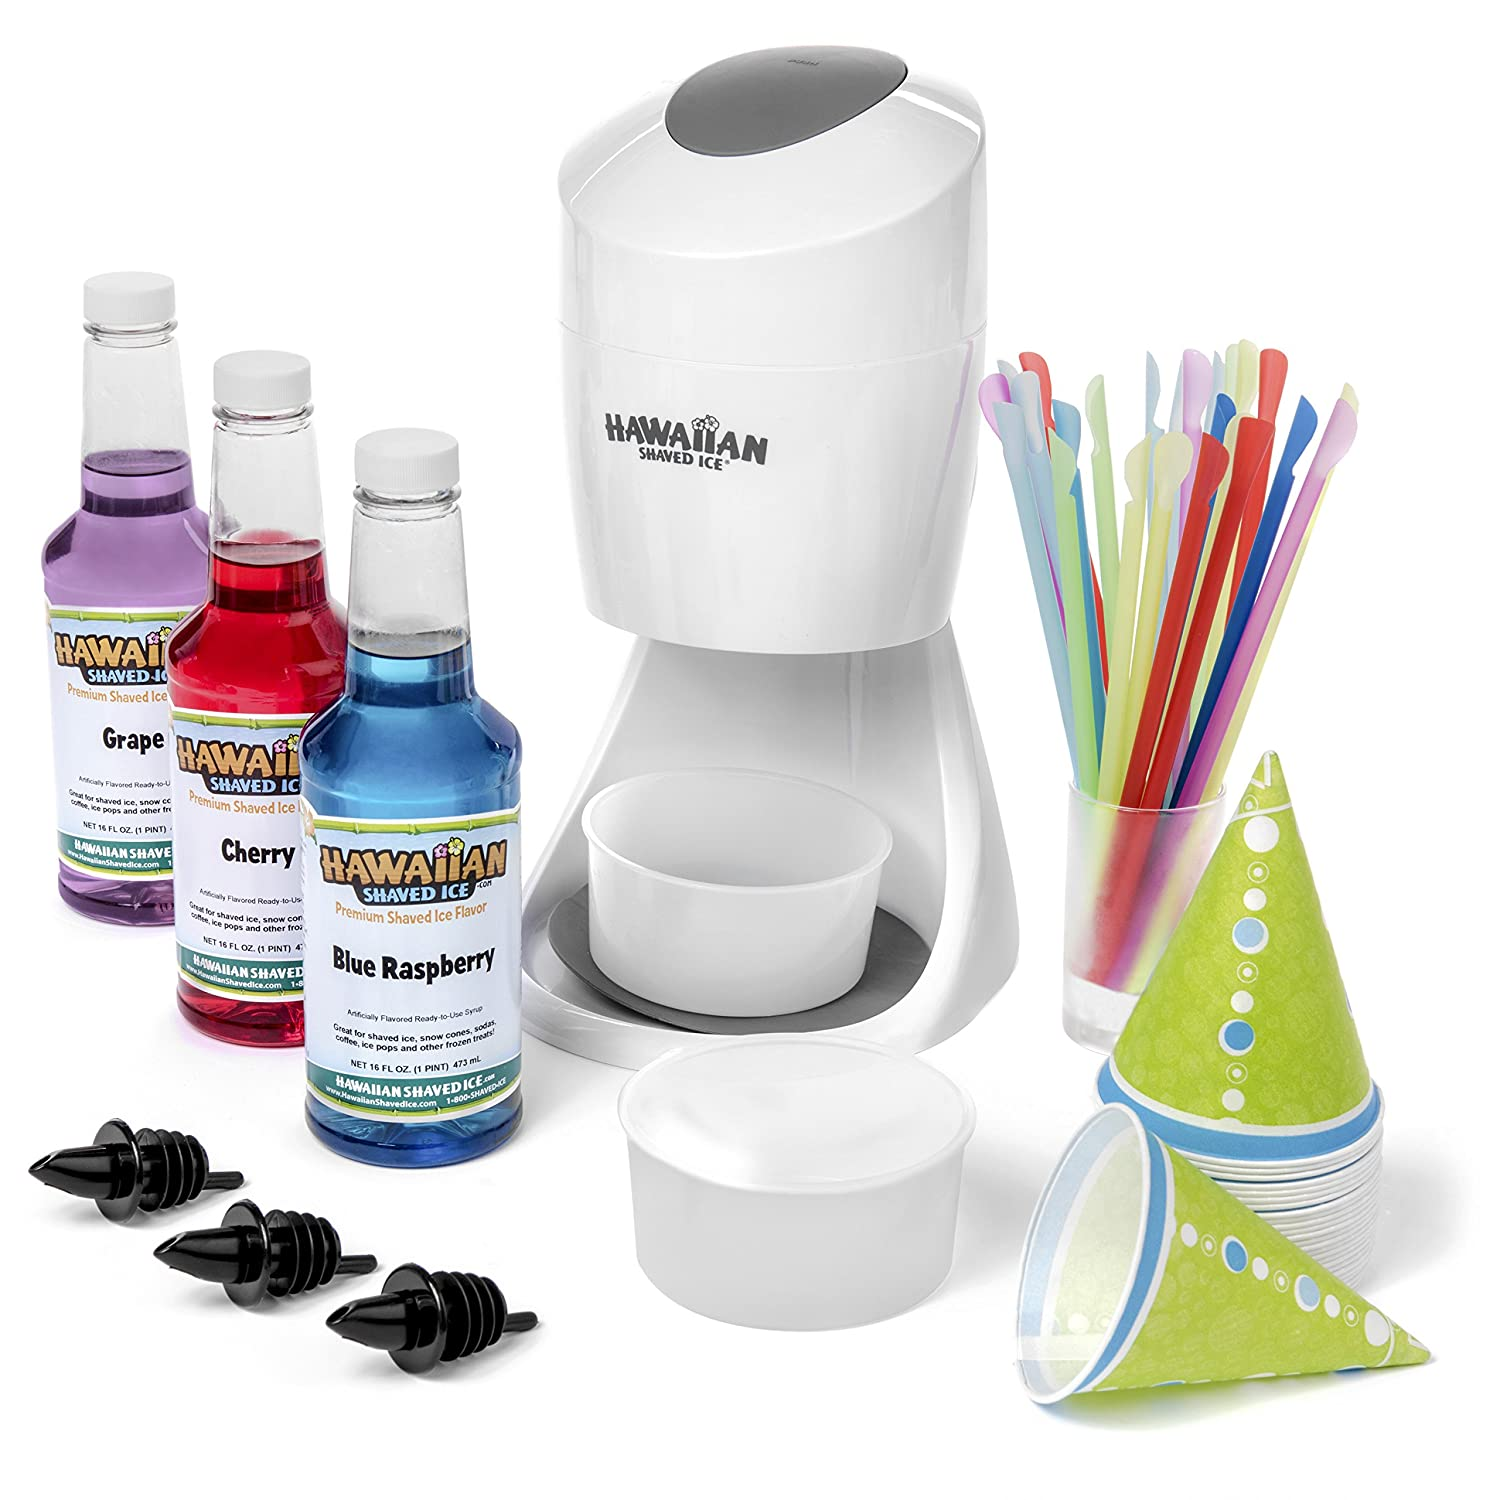 Top 9 Best Kids Snowcones Machine Reviews in 2021 14